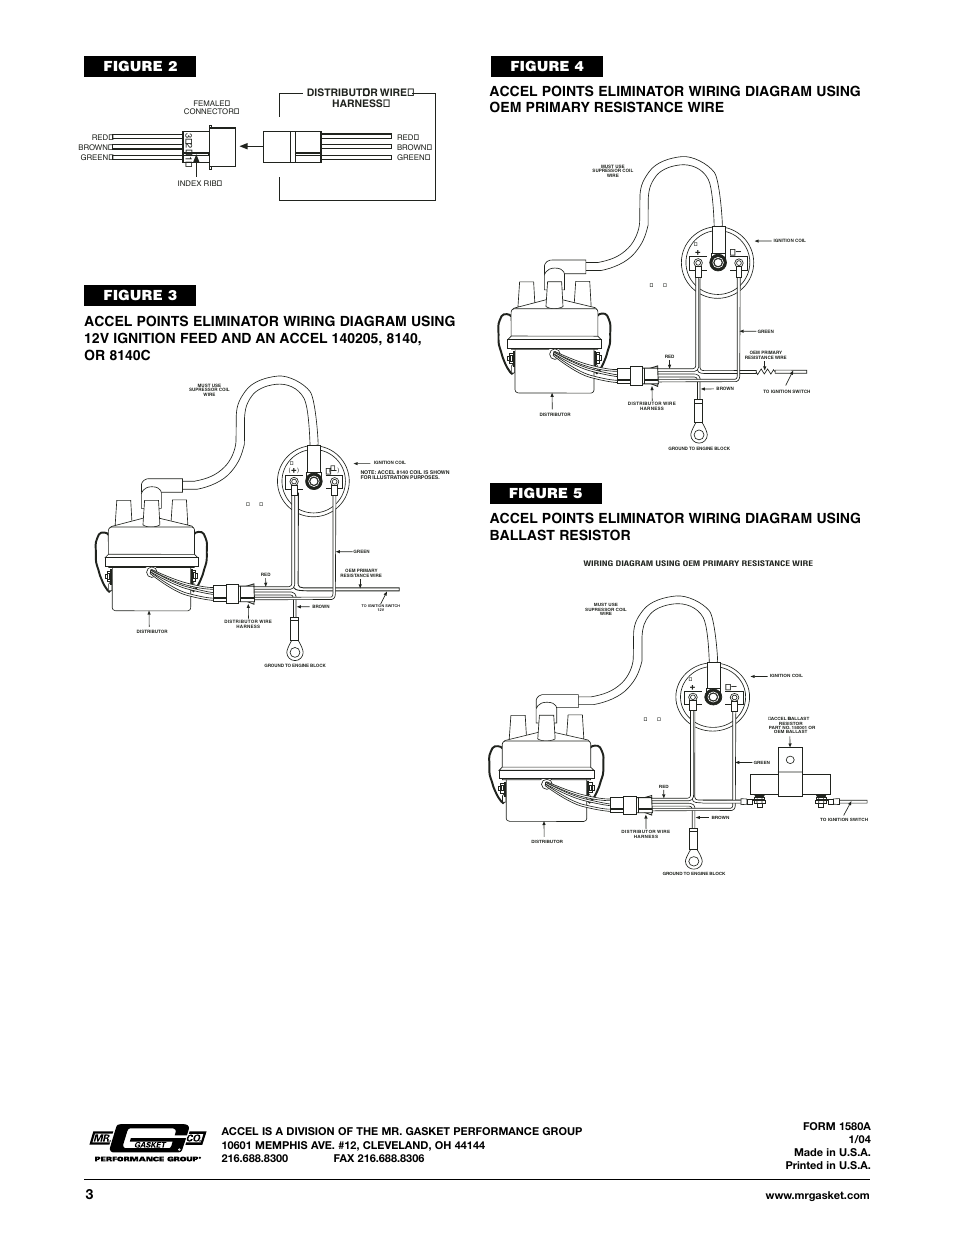 Accel Distributor Wiring Diagram : Figure distributor wire harness mallory